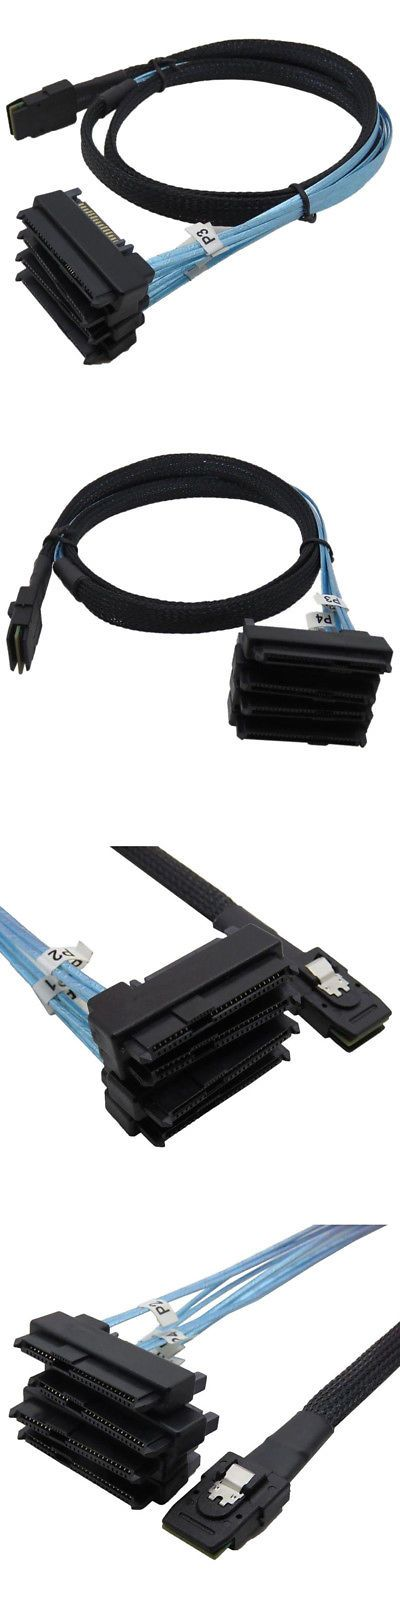 Drive Cables And Adapters 74941 3ft 1m Mini Sas 36p Sff 8087 To 4 Sff 8482 Connectors With Sata Power Cable Us Buy It Now Only Sff Power Cable Connectors